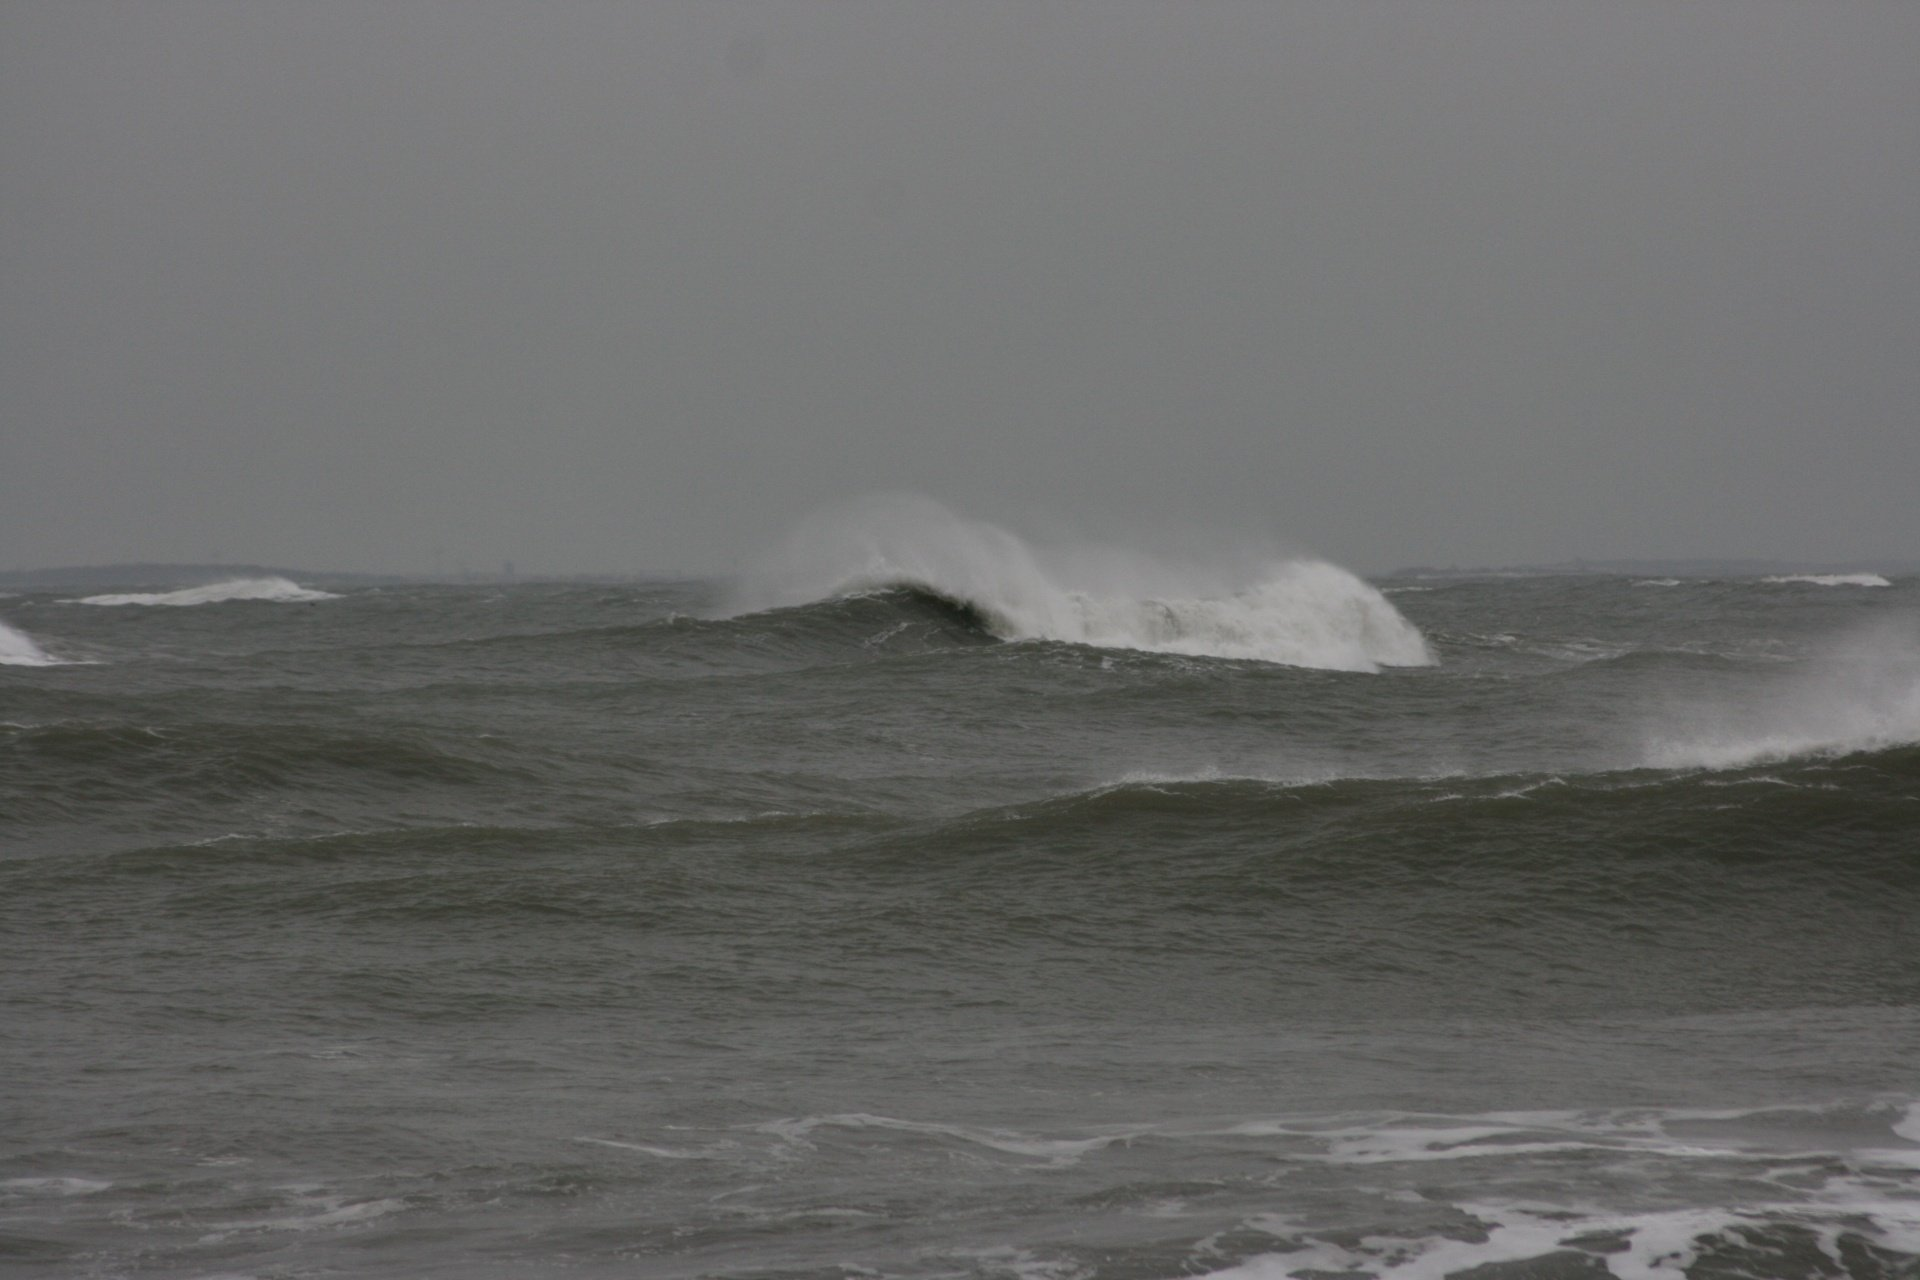 Mhd Surfer's photo of Cape Ann